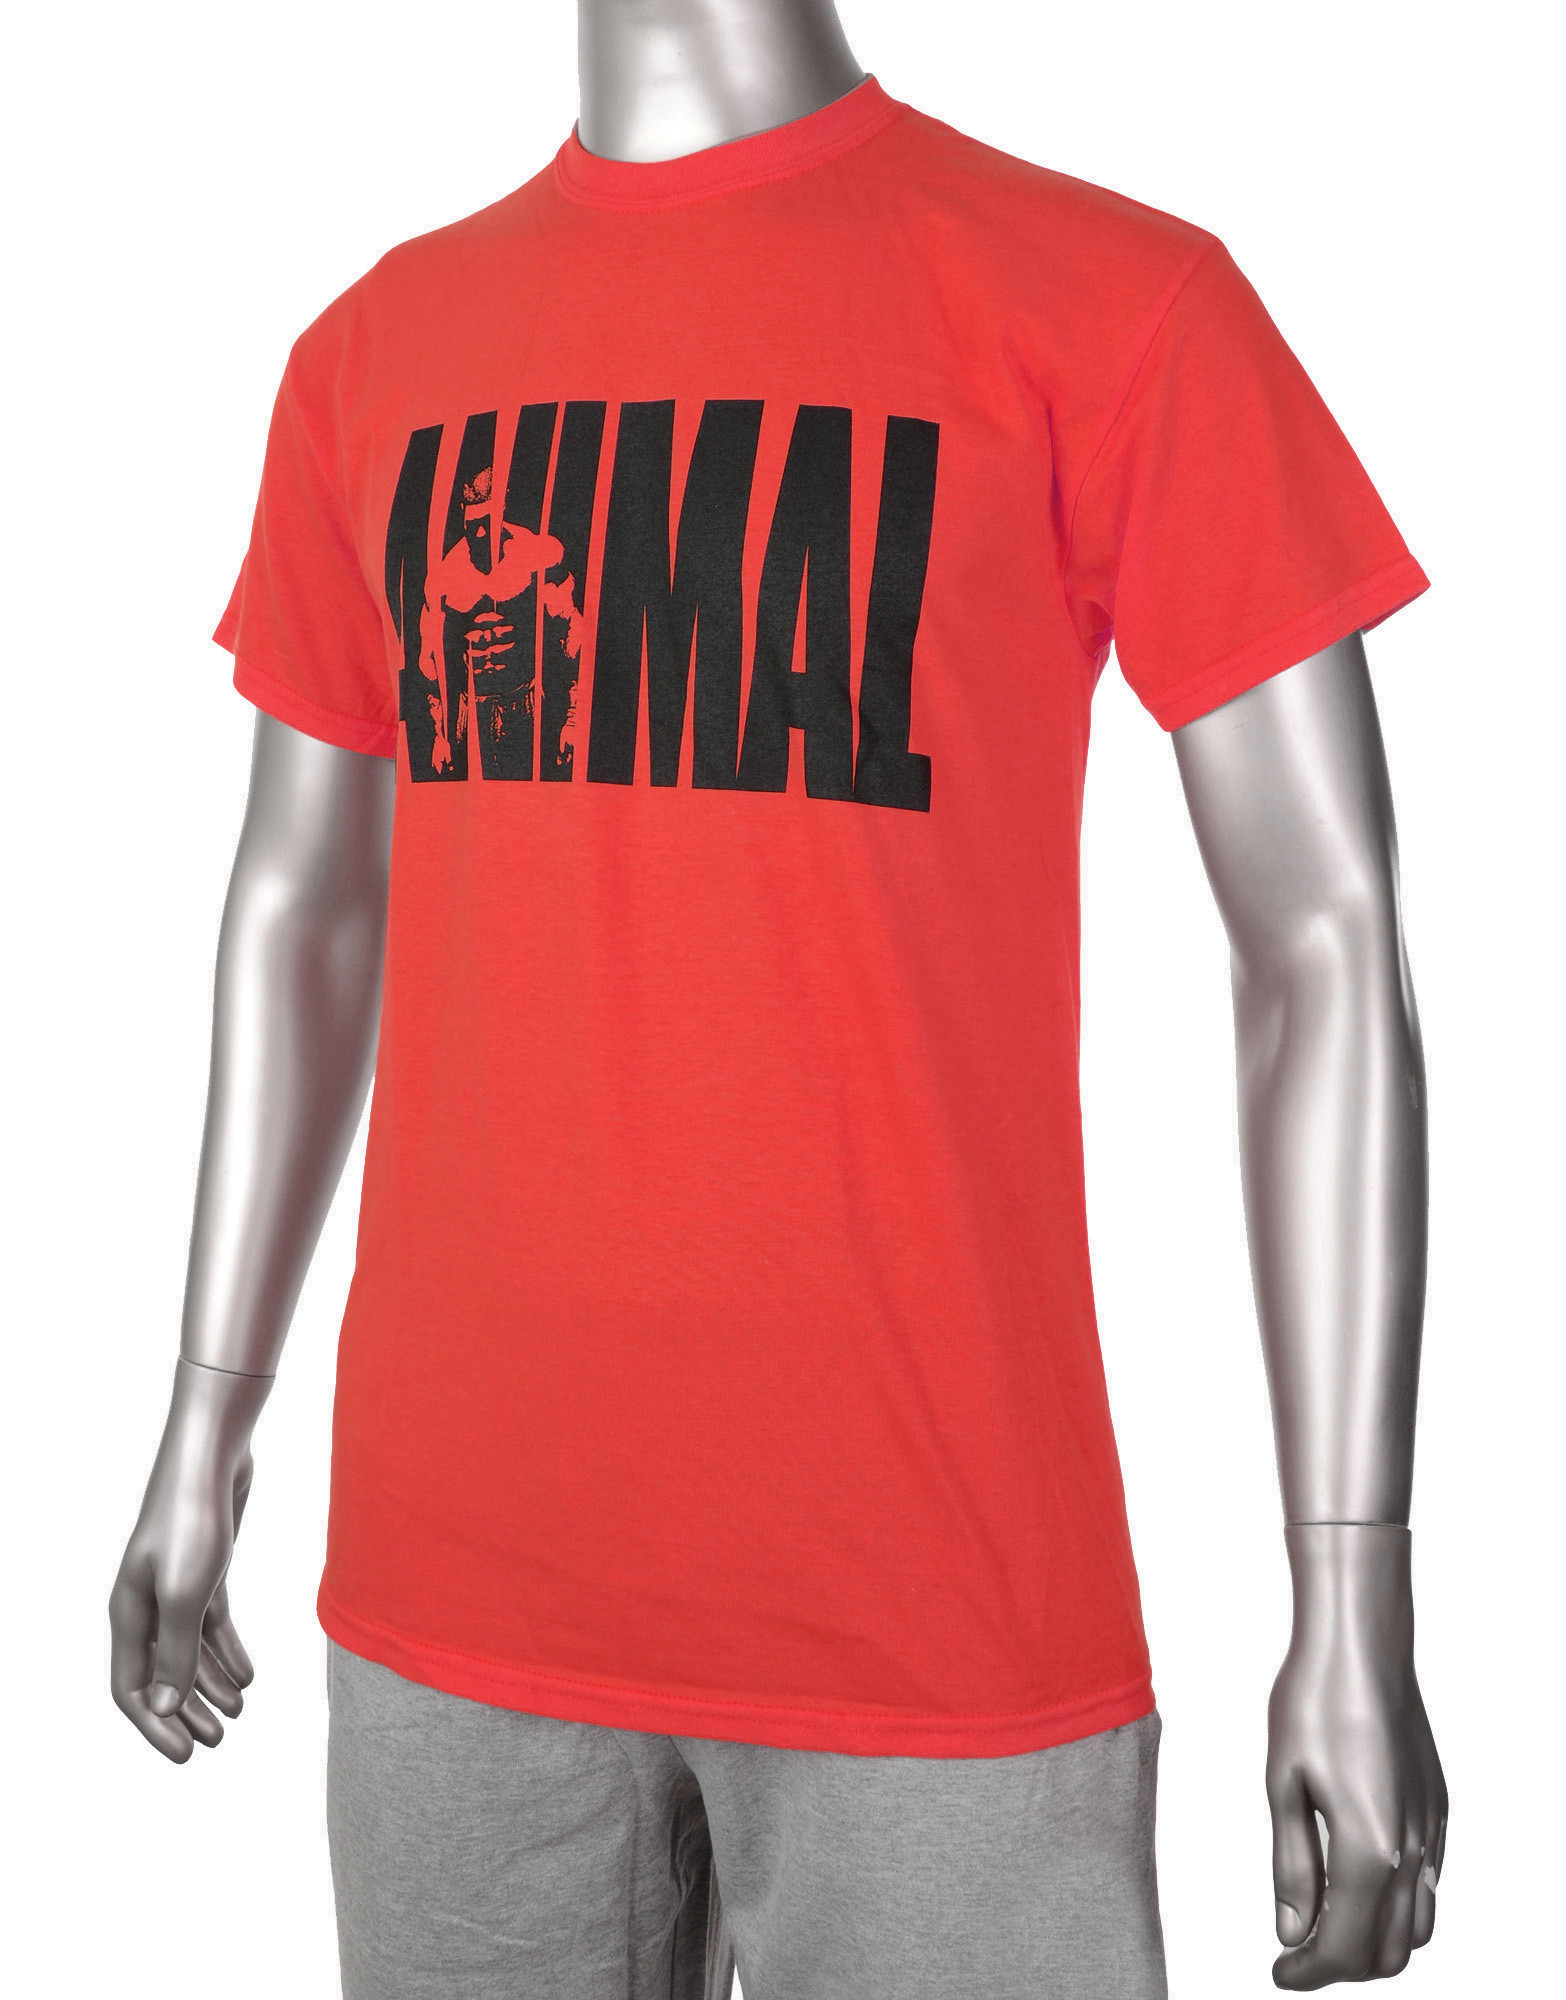 Animal iconic t shirt by animal gear colour red 8 40 for Animal tee shirts online